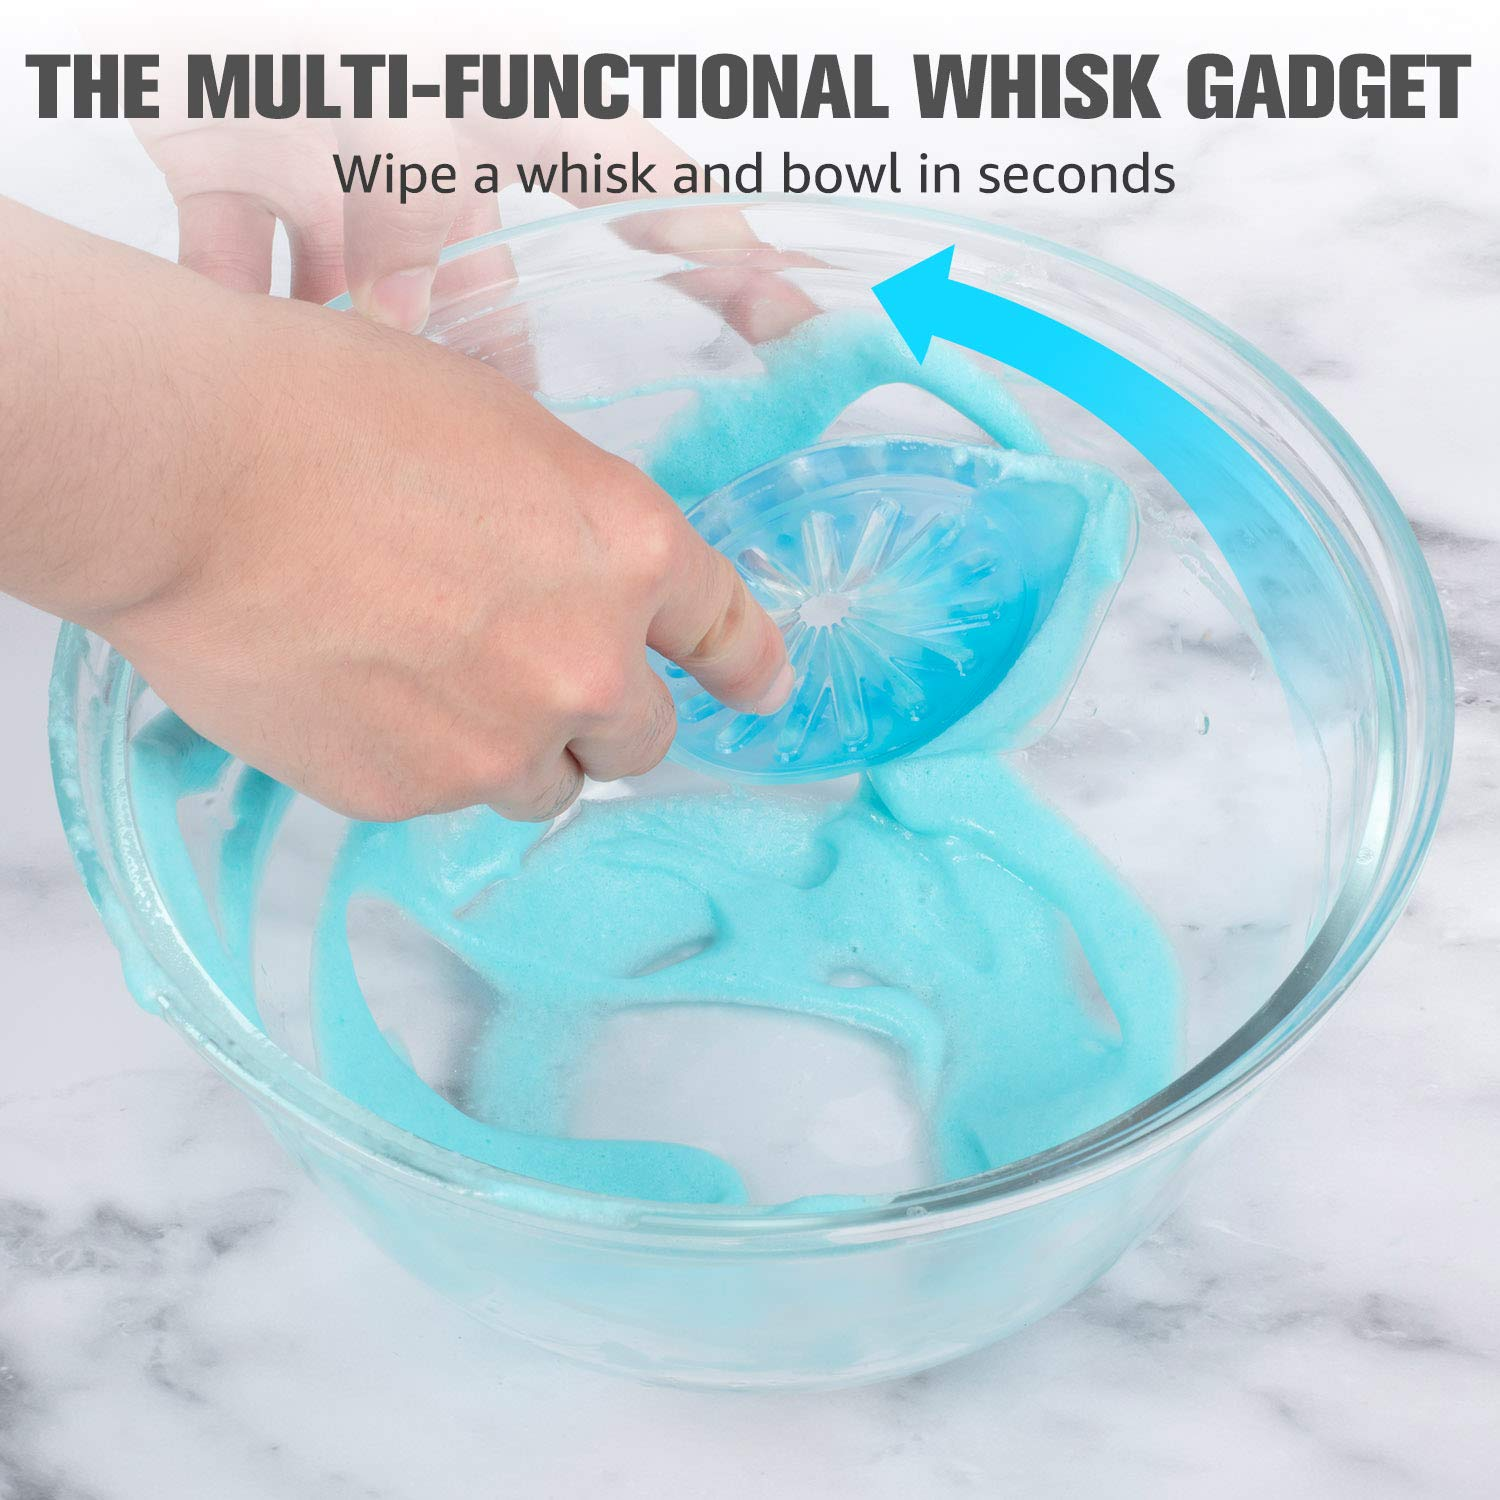 Smart Multi-use Kitchen Baking Gadget tools beater Whisk With Wiper,Wipe and Clean a Whisk Easily,Stainless Steel Whisk with Scraper,Beater Wipe Guard When you Blending